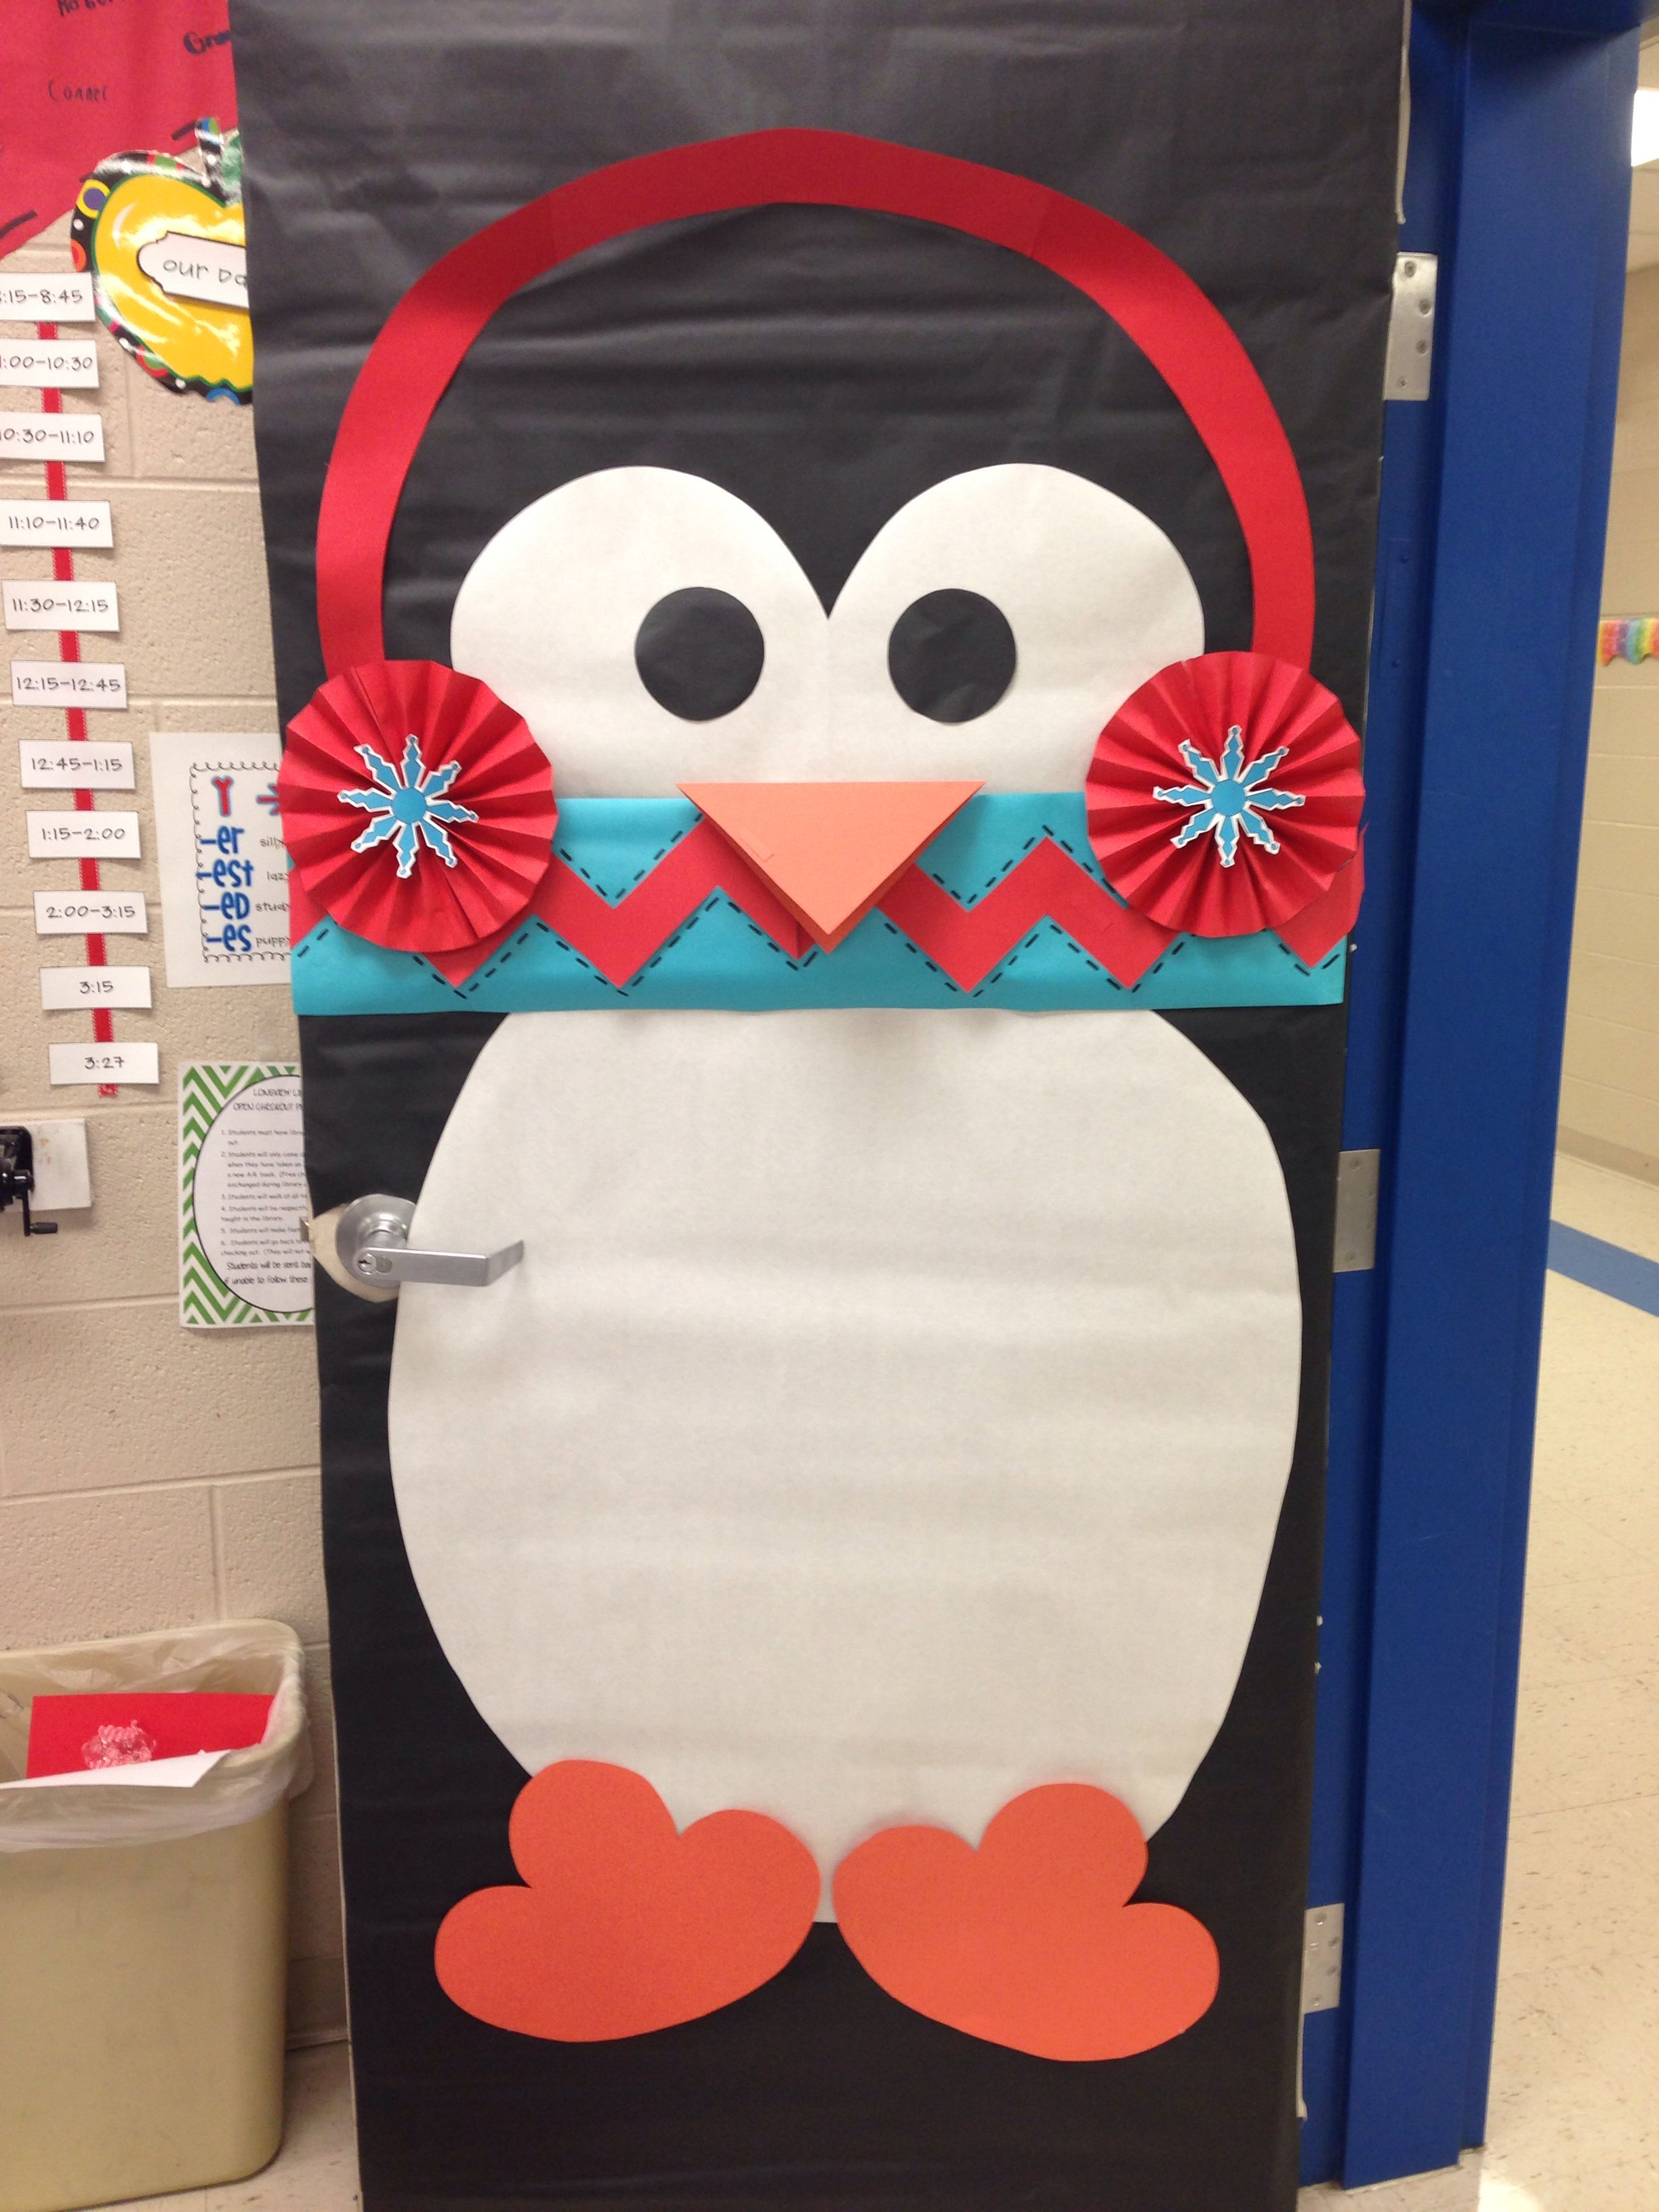 Penguin door decoration.